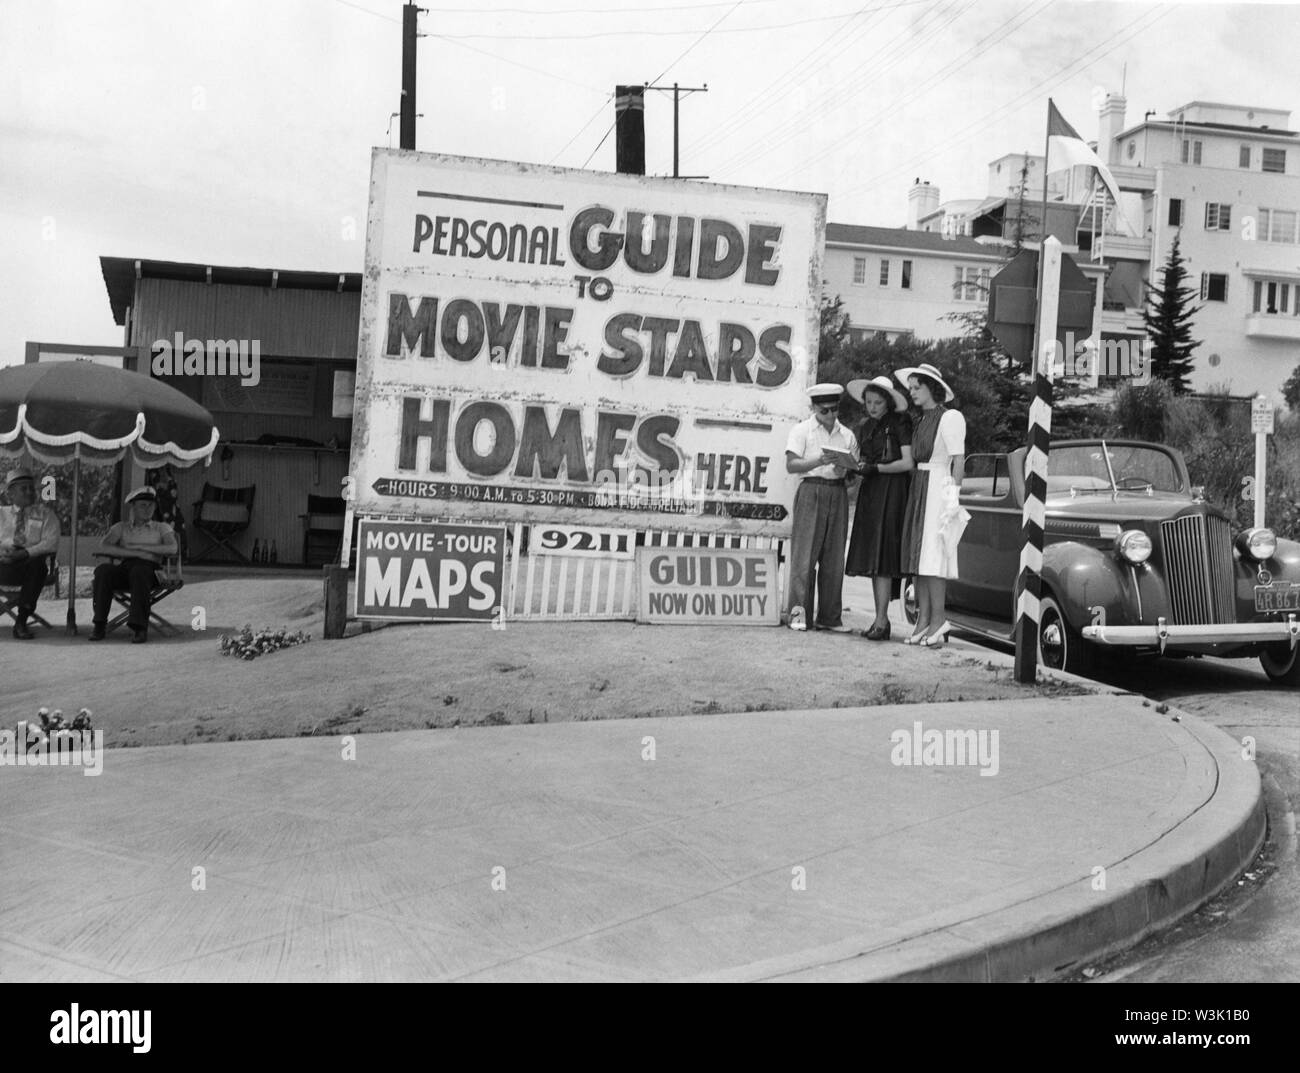 LARAINE DAY and MARY HOWARD Personal Guide to Movie Stars Homes 1940 Hollywood California Metro Goldwyn Mayer Publicity - Stock Image